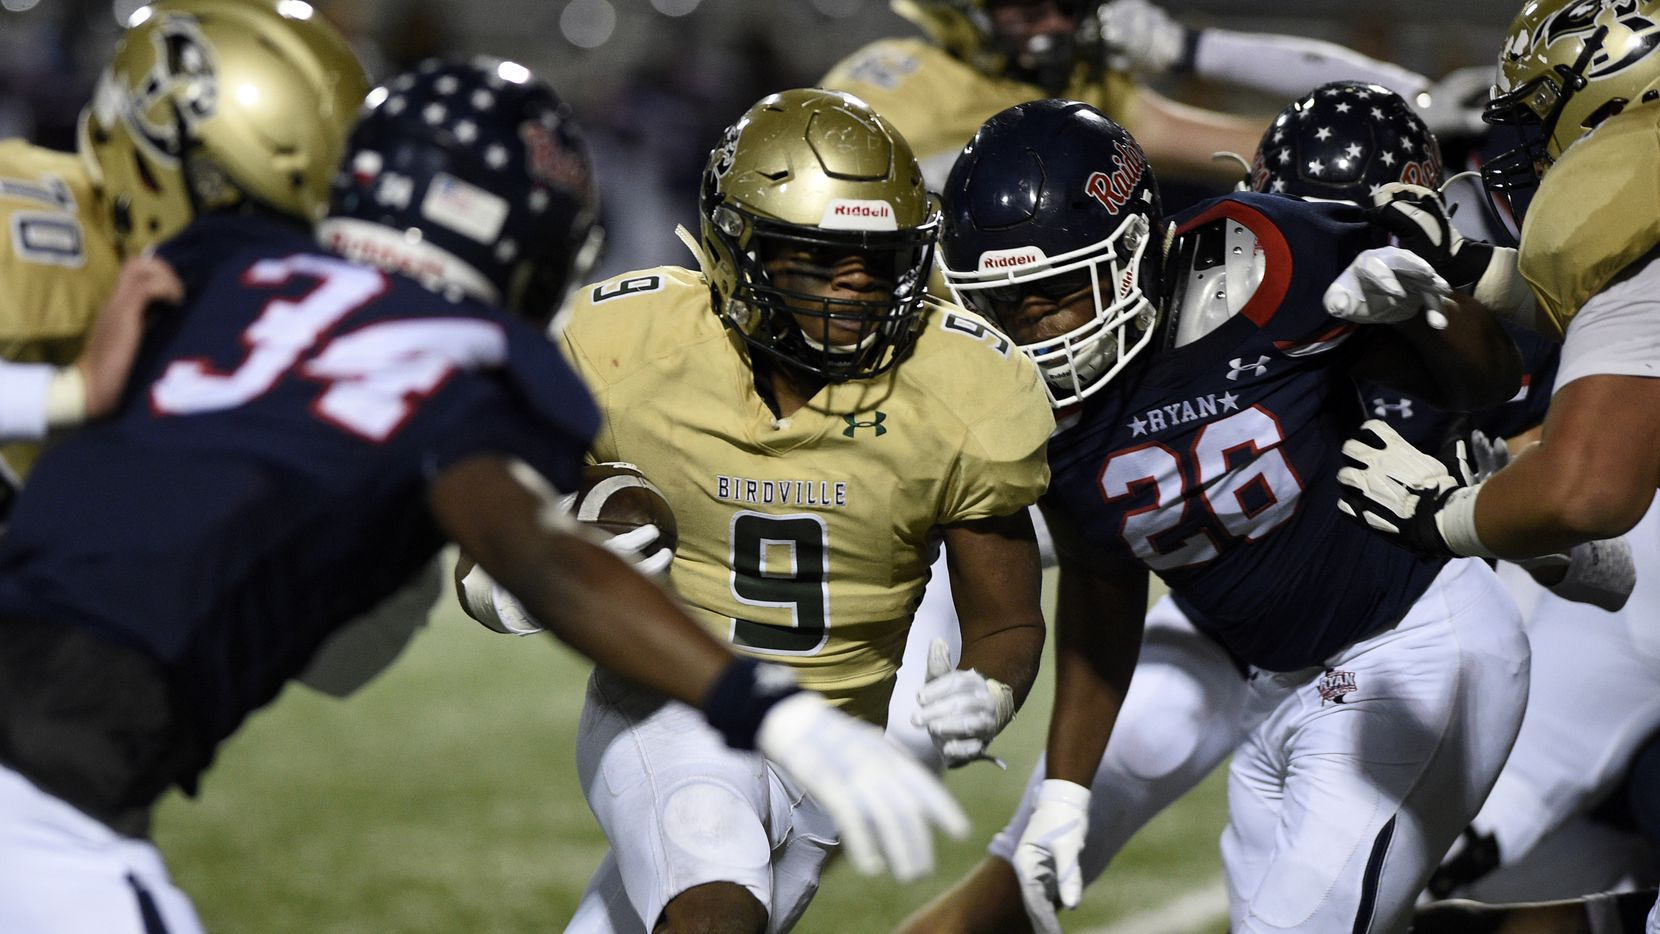 Birdville running back Laderrious Mixon (9) carries the ball against Denton Ryan during the game Thursday at C.H. Collins Athletic Complex in Denton, Texas.